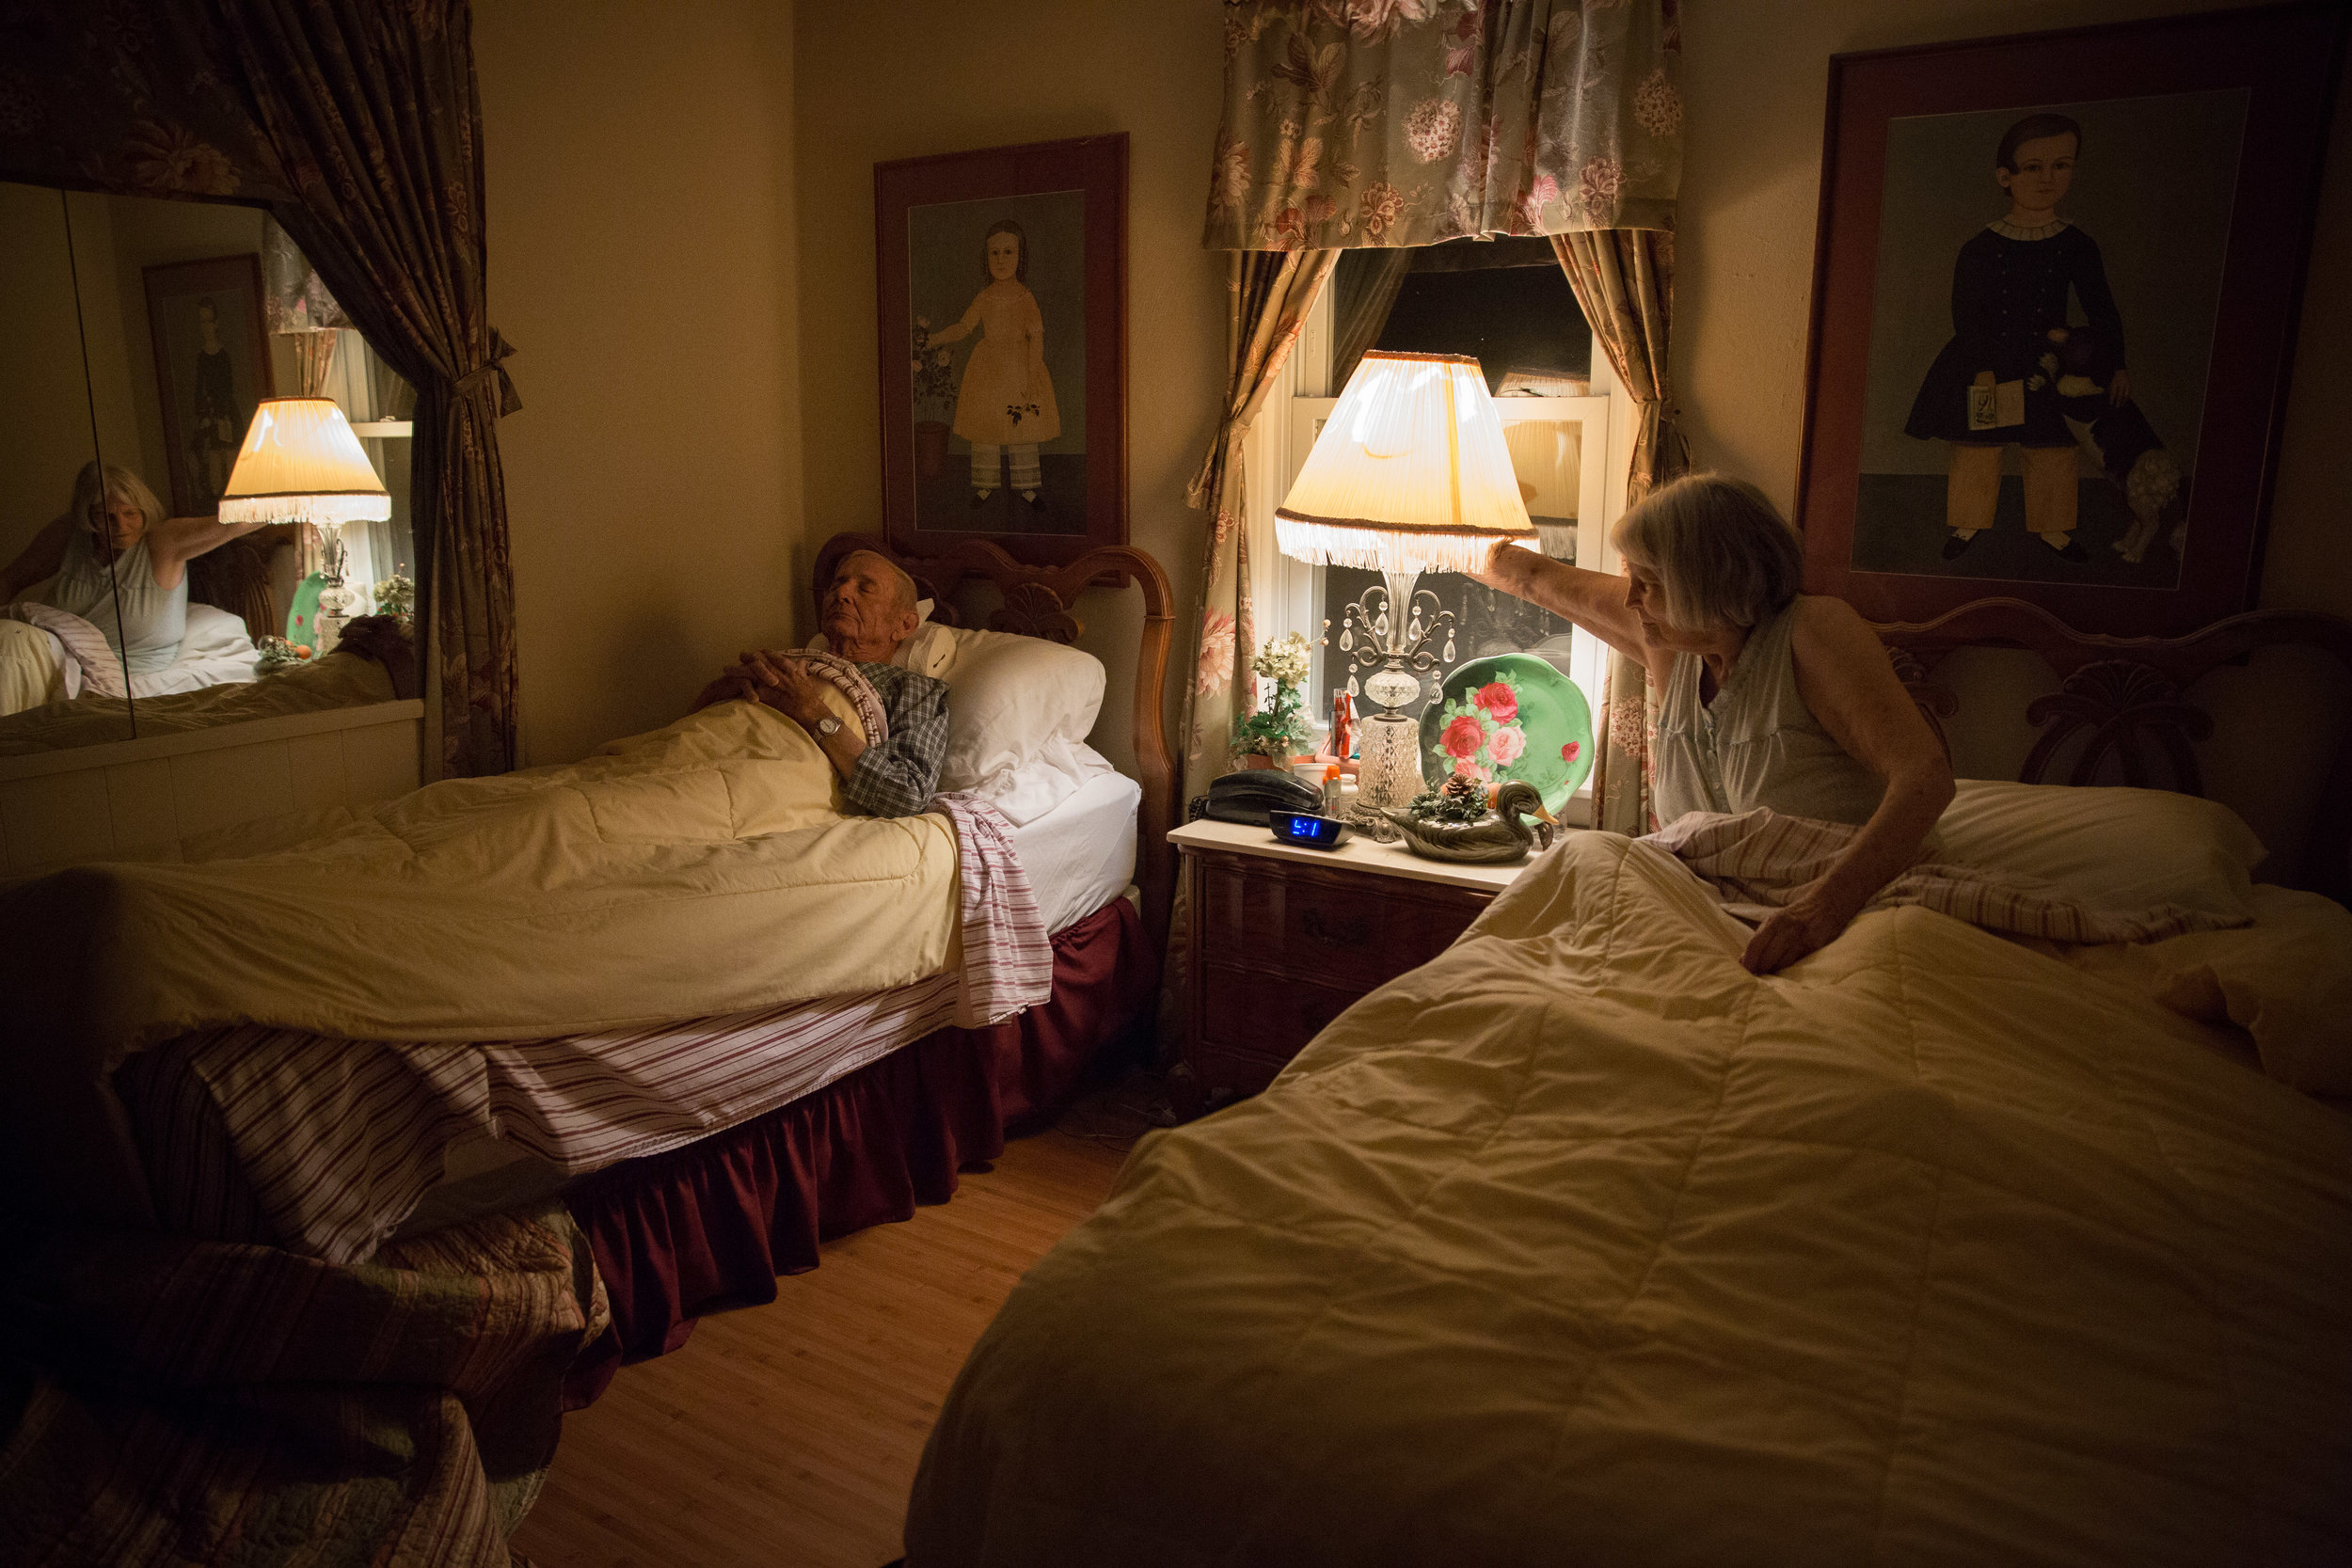 Around 9 p.m. Ruth tucks Carl into bed before getting into her bed and turning out the light.